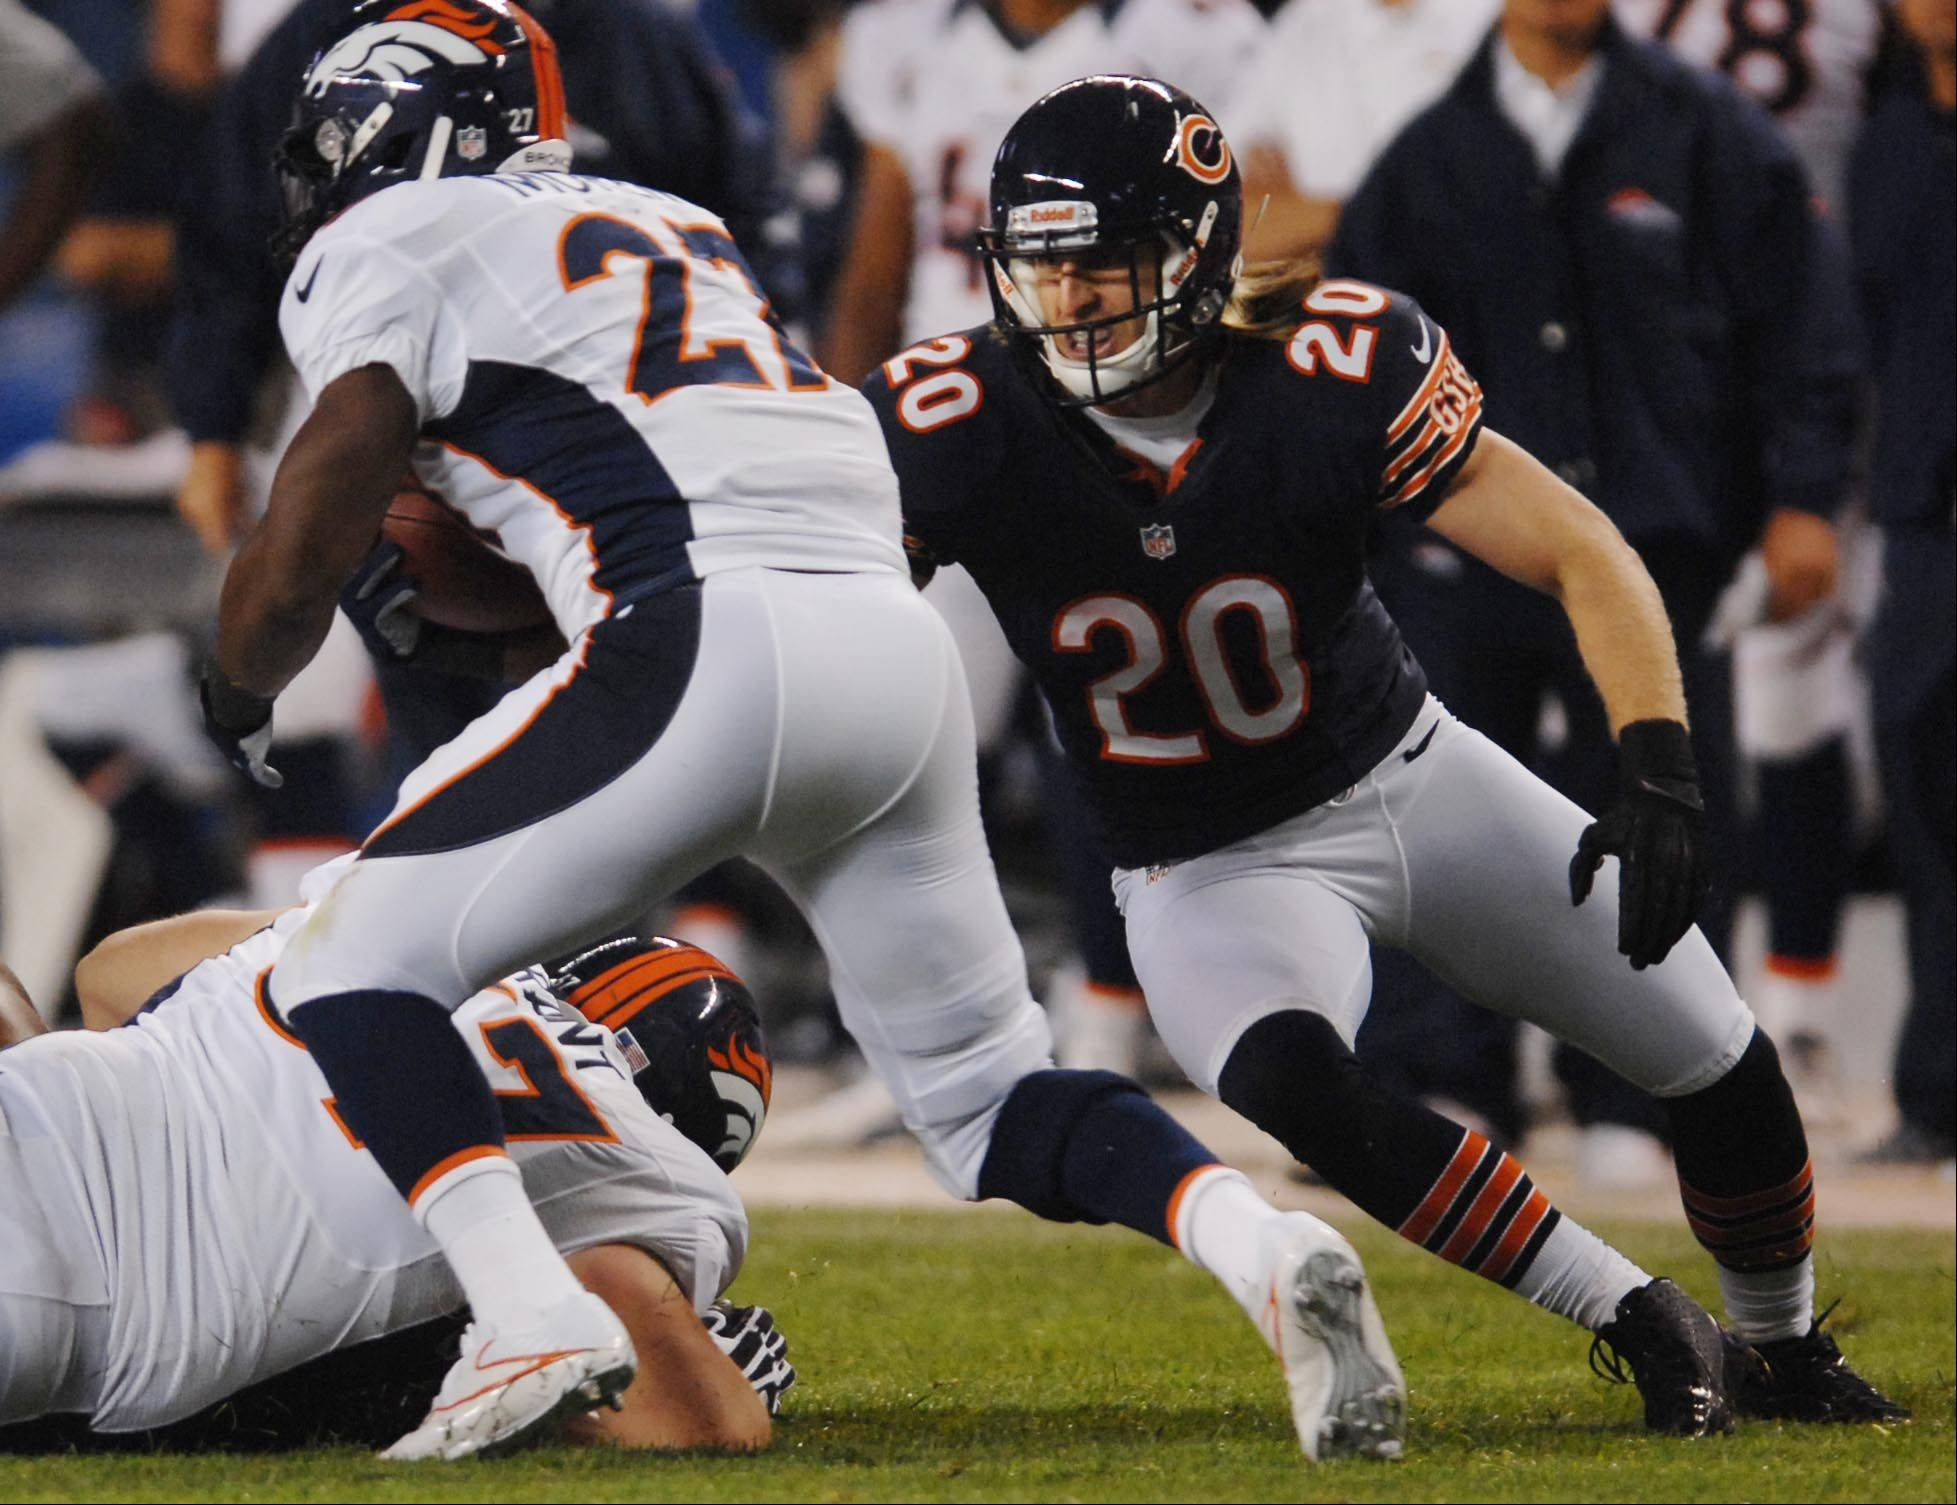 Could Bears' Steltz push for starting spot?